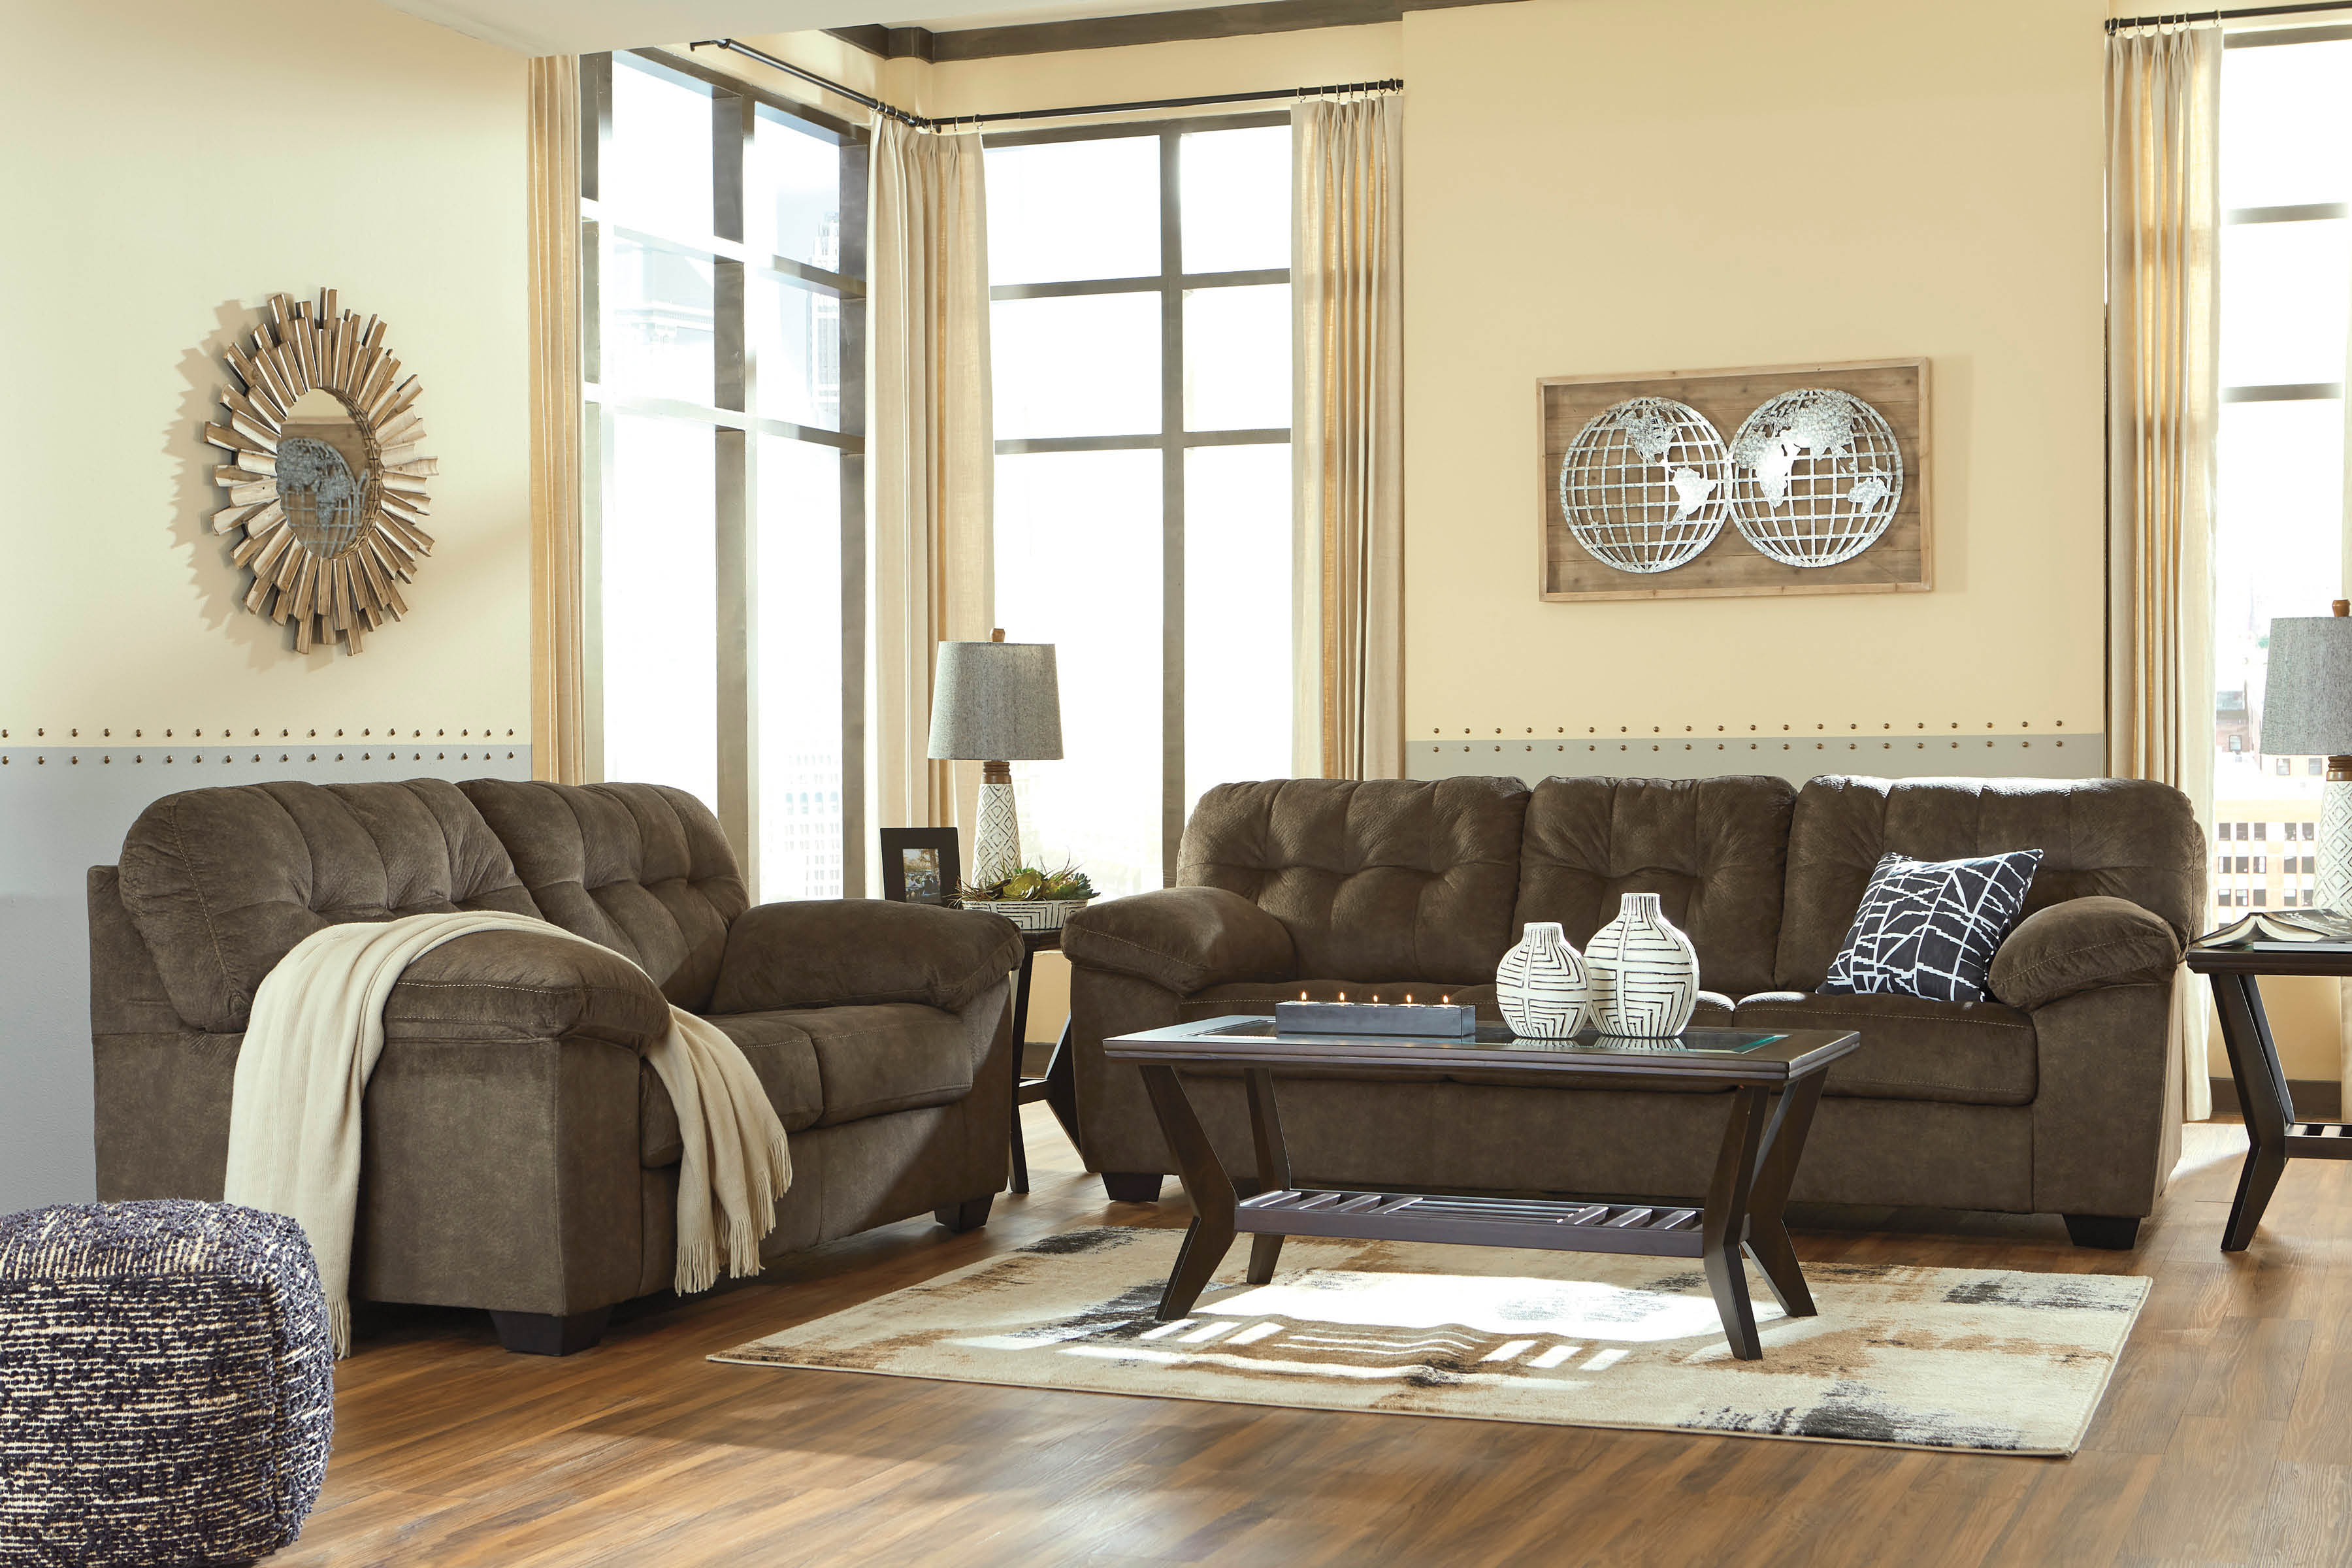 New York Avenue Furniture In Huntington Station Ny Local Coupons February 23 2018